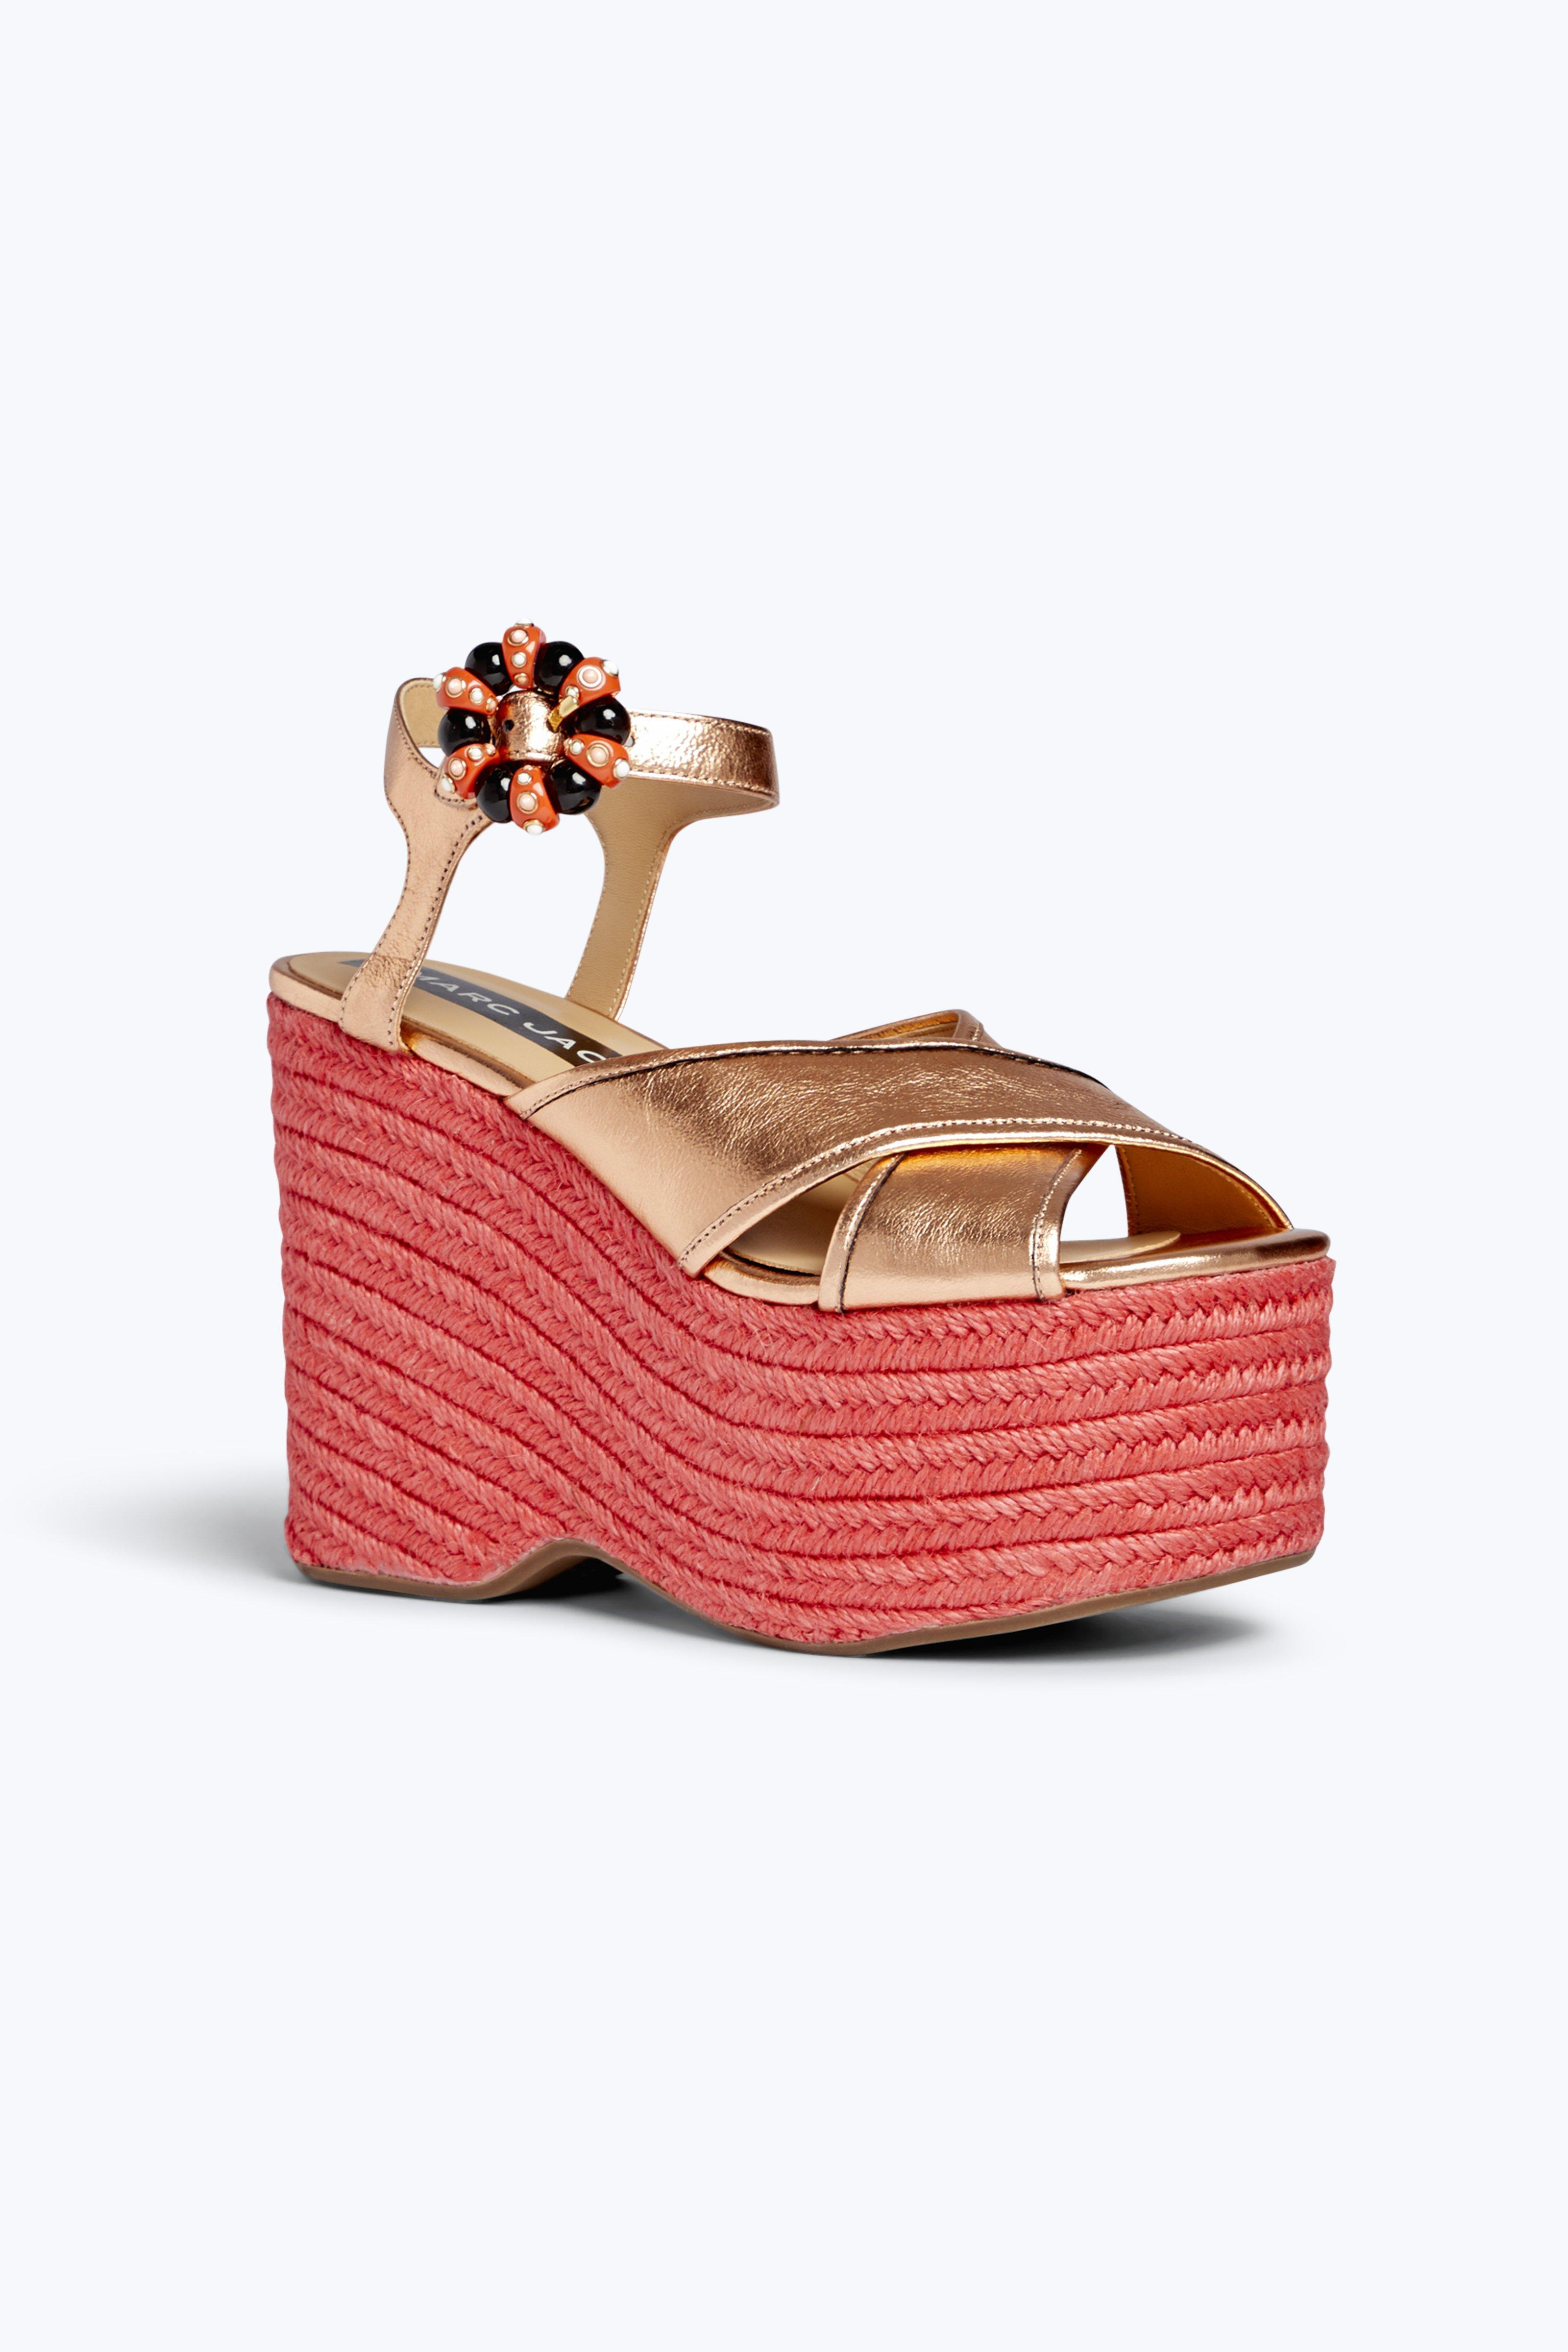 5e7b396658c6 Marc Jacobs Women s Rowan Platform-Wedge Espadrille Sandals - Gold Size 10  A great designer gift. Stay on top of Spring trends and shop Marc Jacobs at  ...